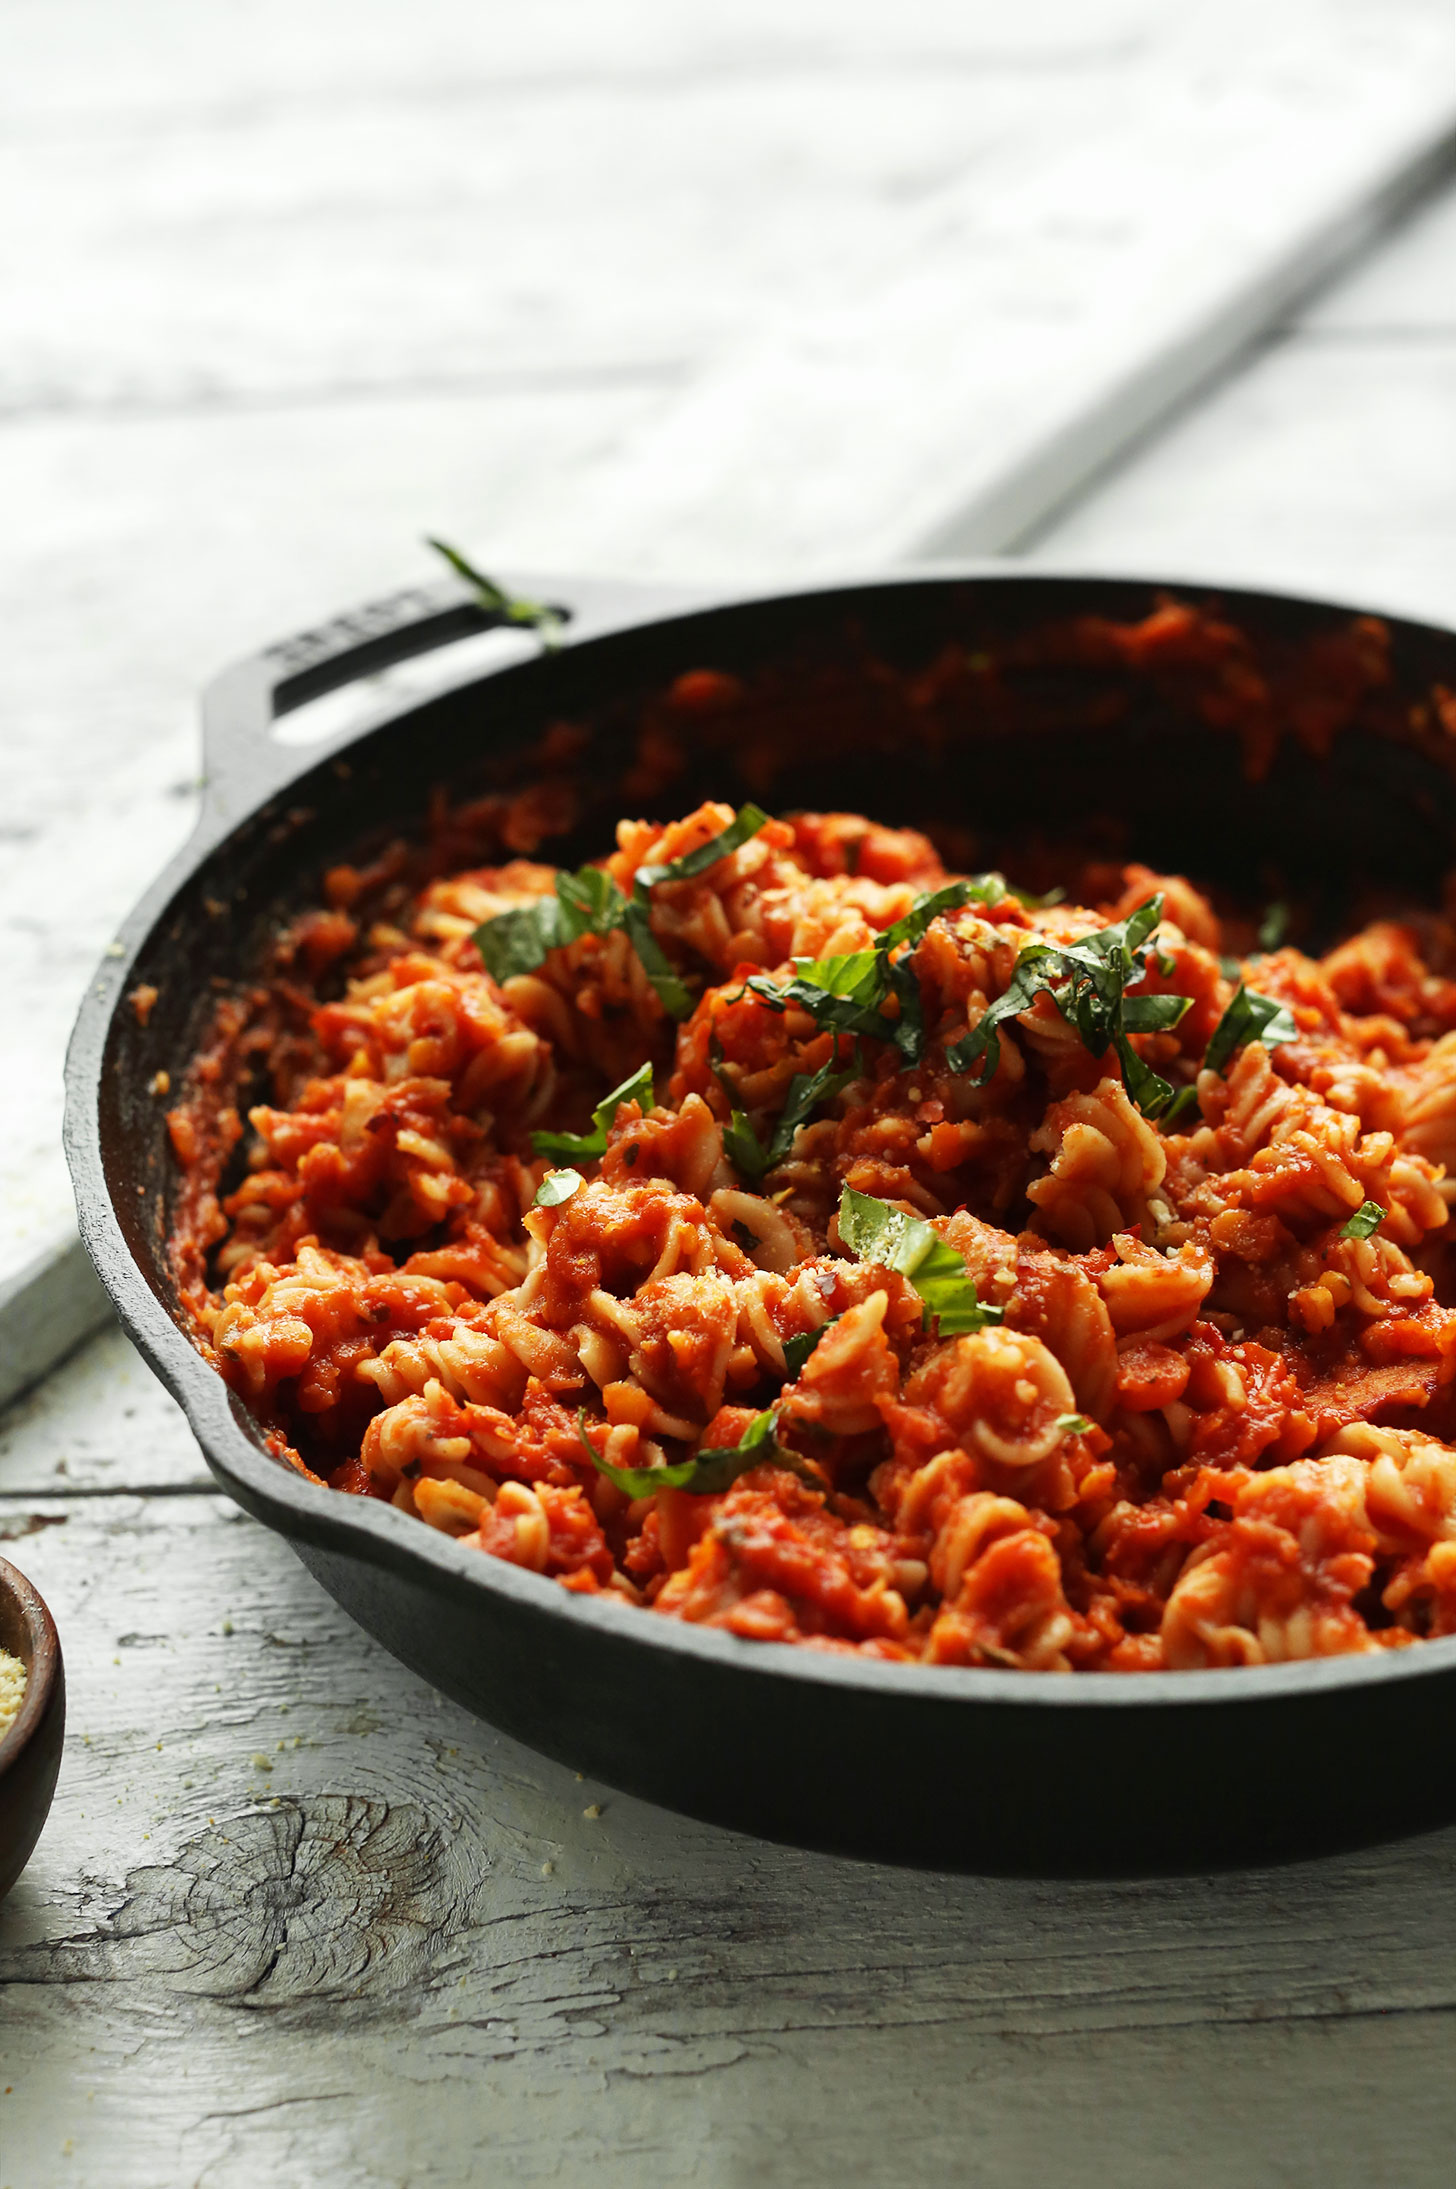 Healthy choice pasta sauce recipes